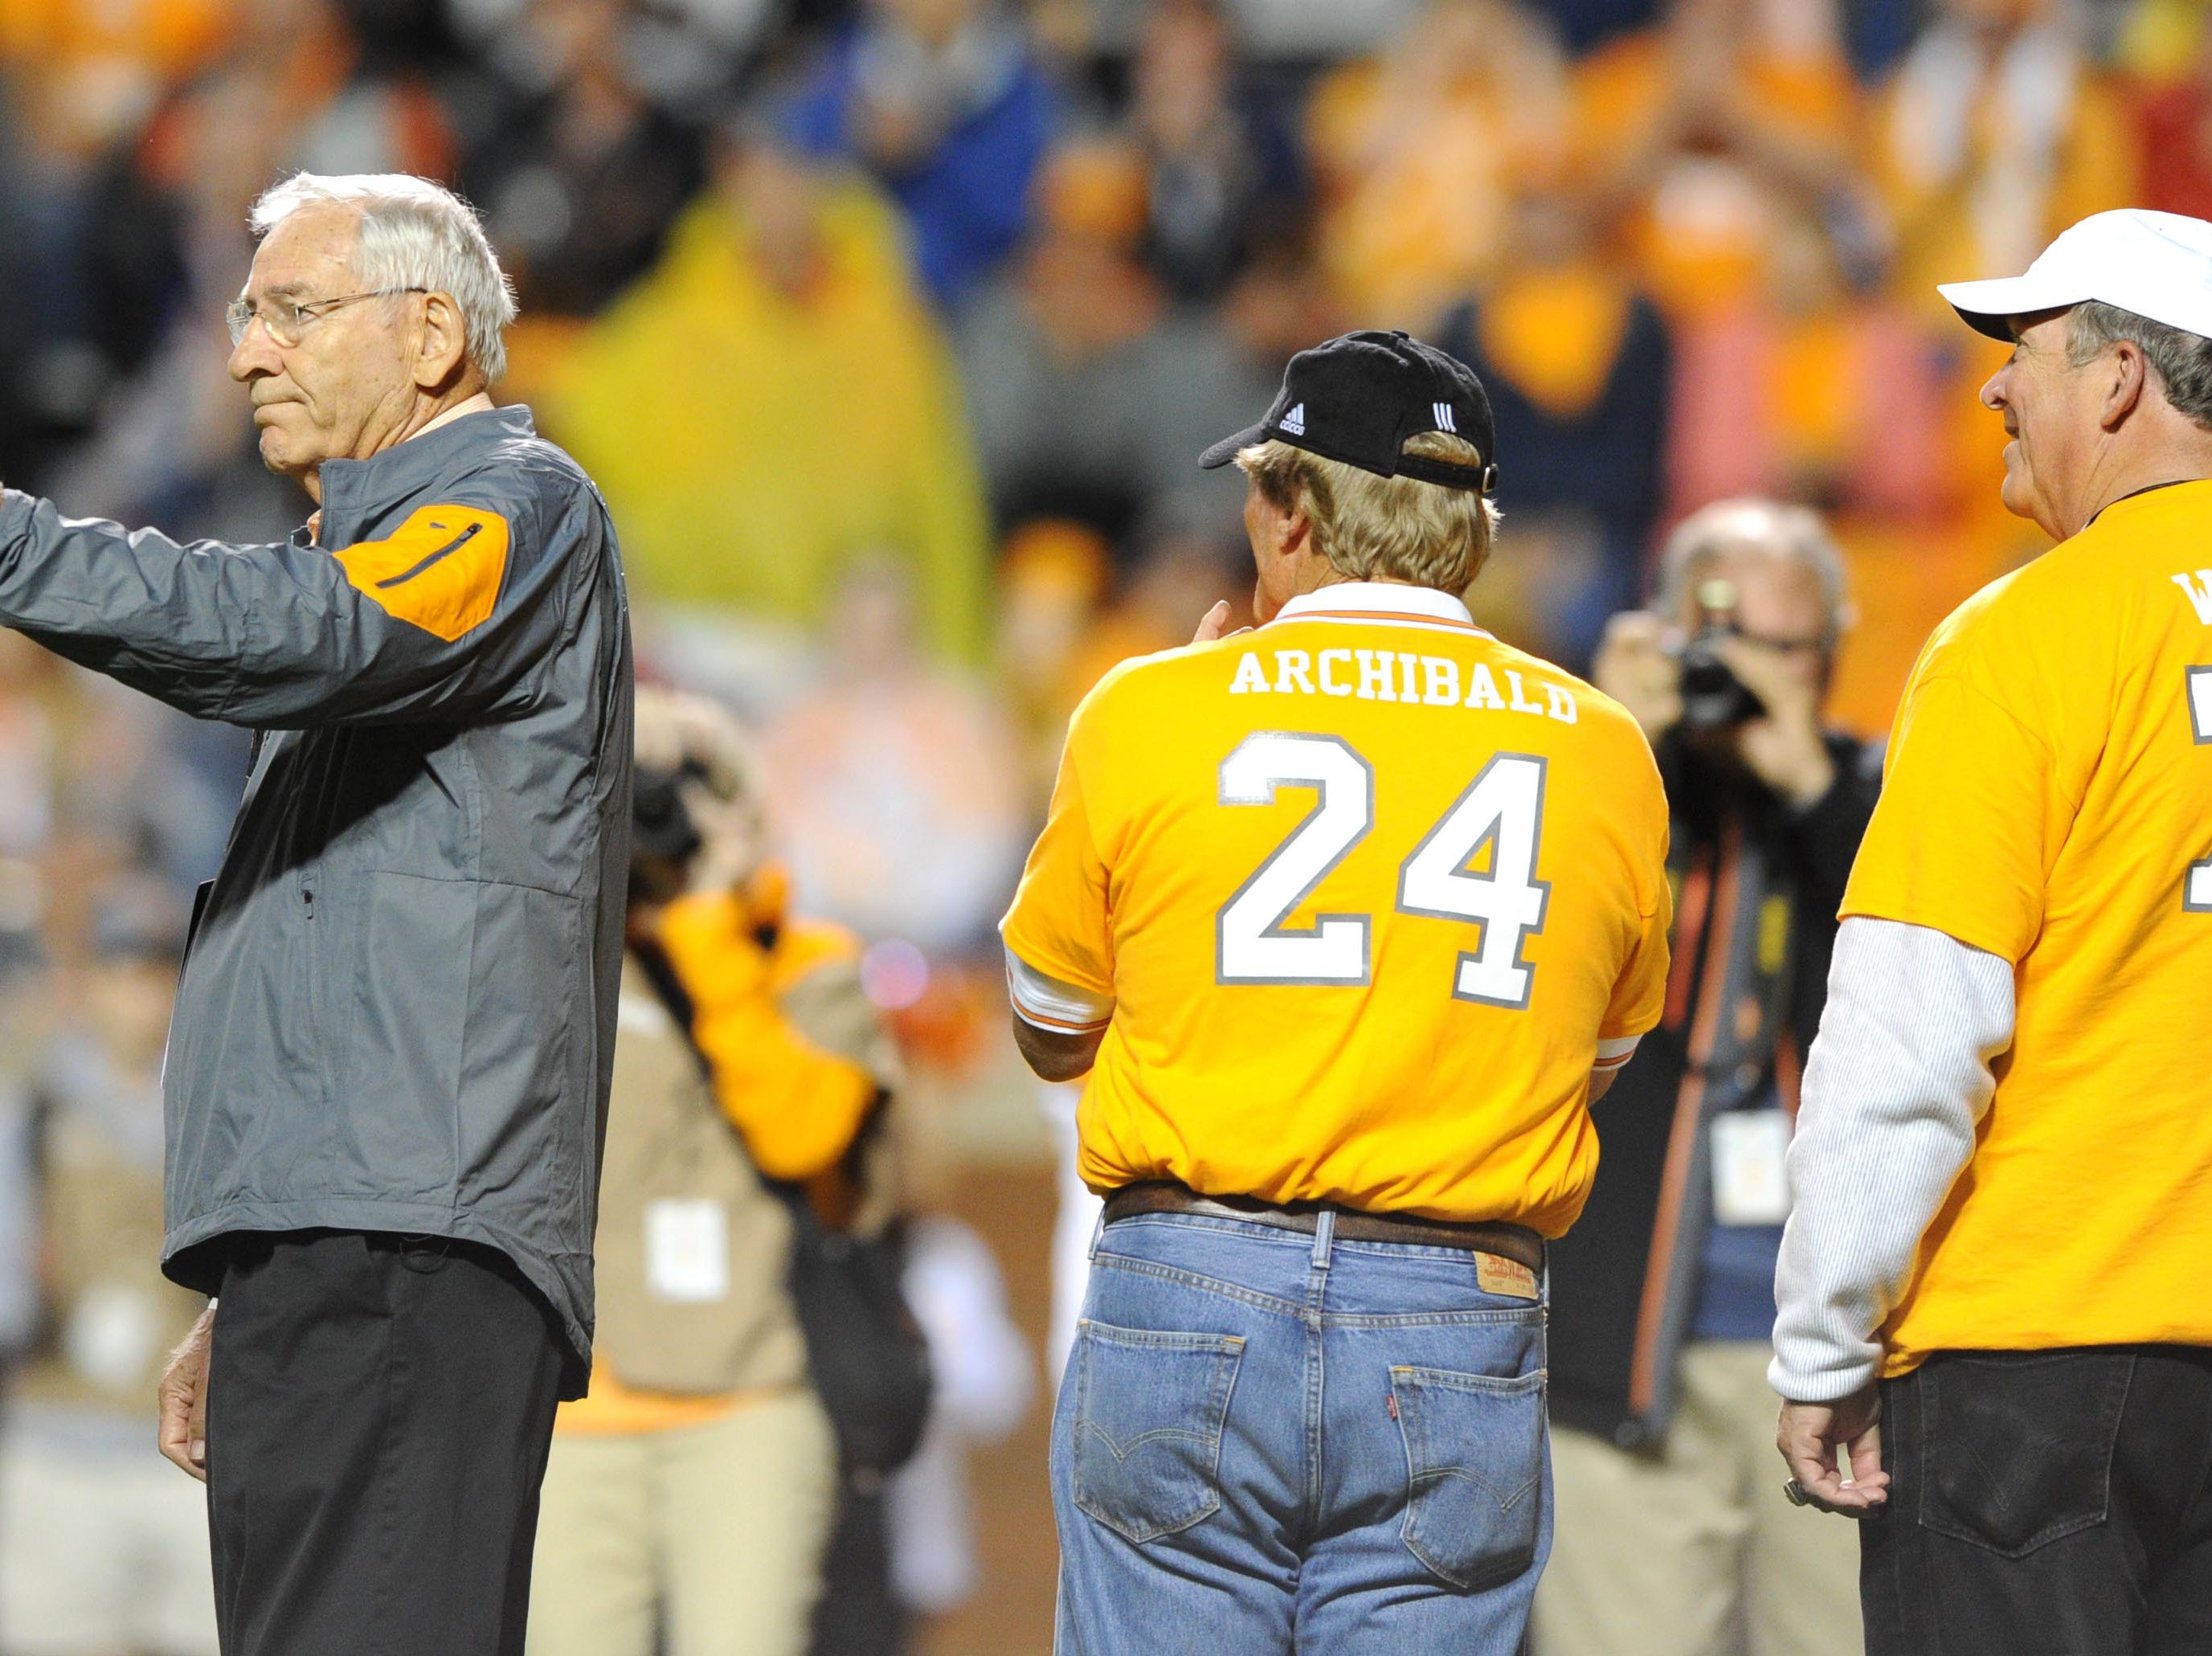 Doug Dickey, former Tennessee football coach, waves his cap to acknowledge the crowd during the first half against Arkansas at Neyland Stadium in Knoxville, Tenn. on Saturday, Oct. 3, 2015.